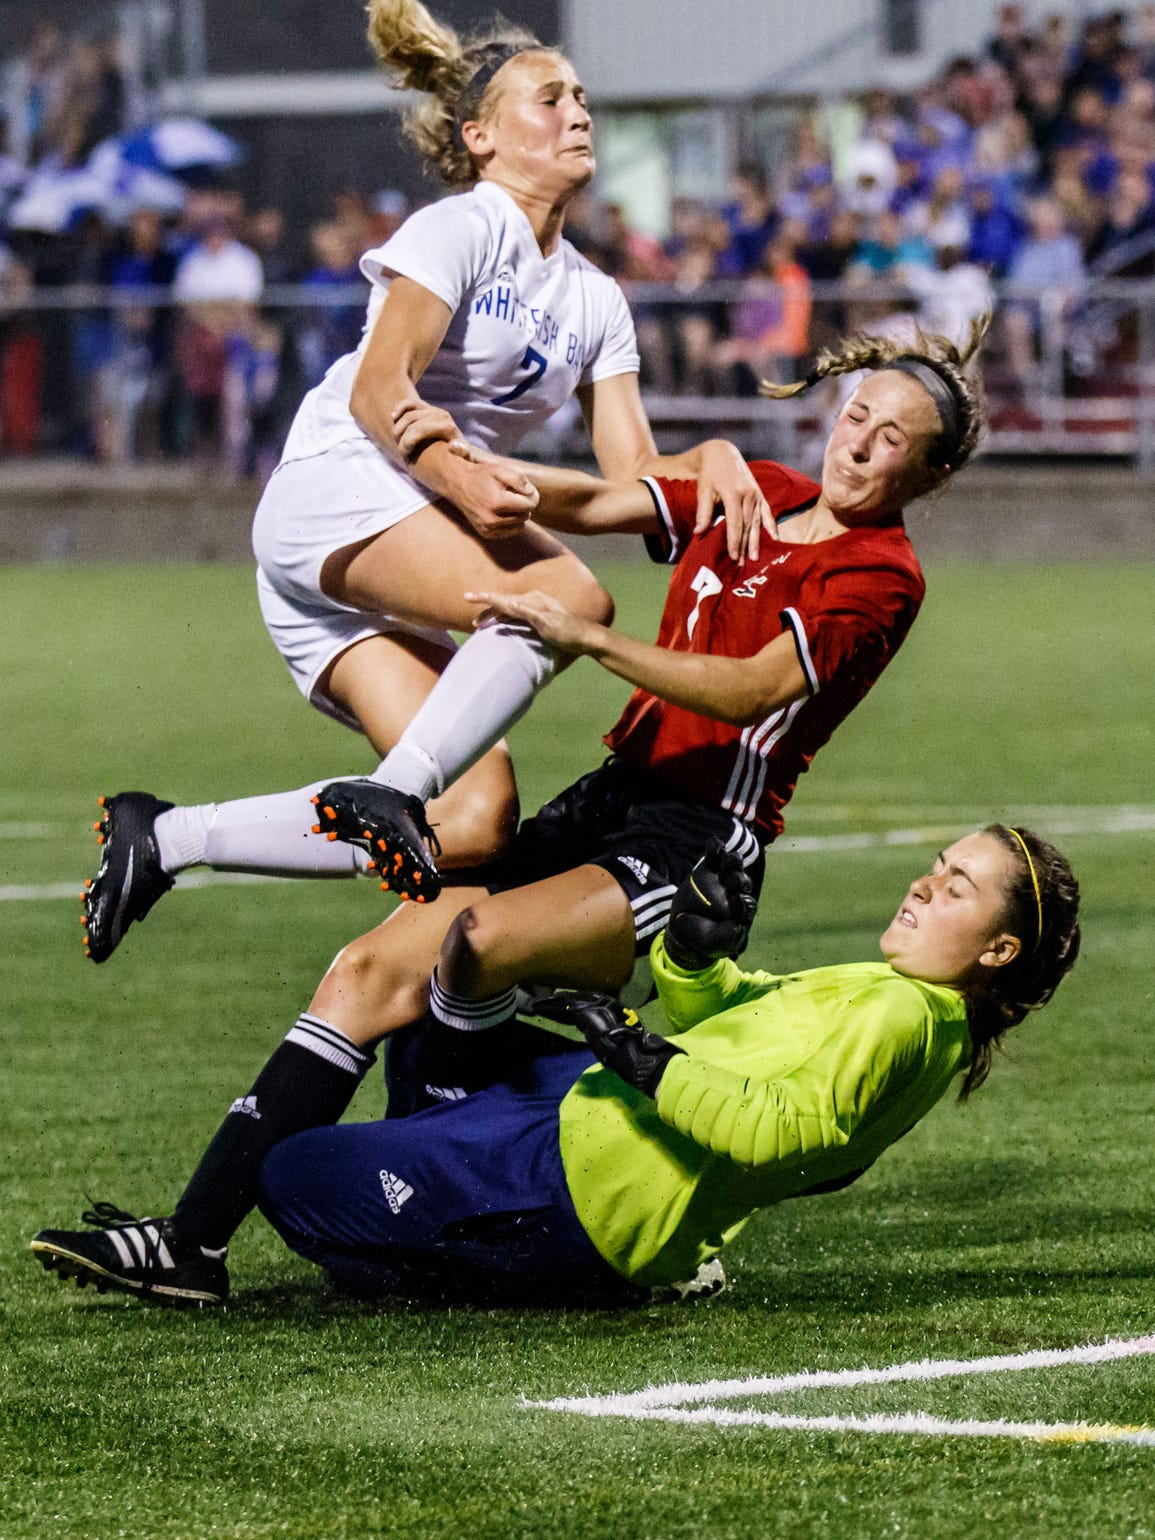 Whitefish Bay junior Gracie Riedl (top) collides with